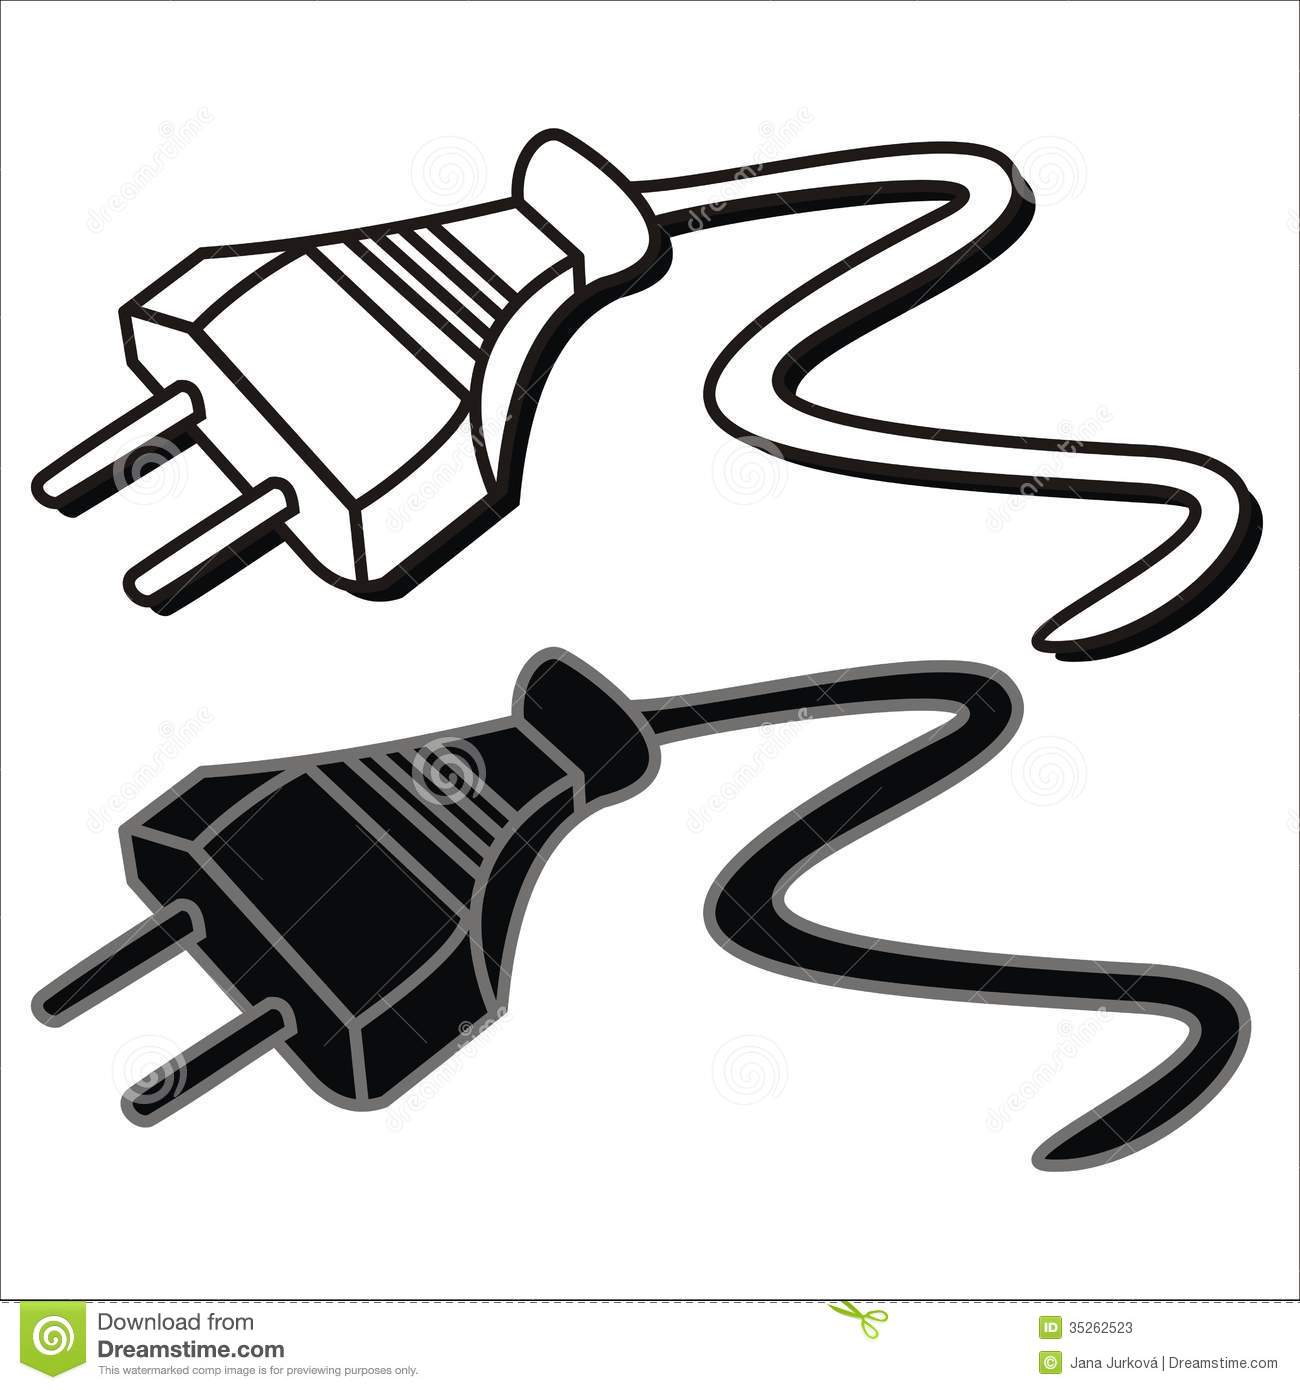 Plugged clipart overloaded Plug clipart in to clip